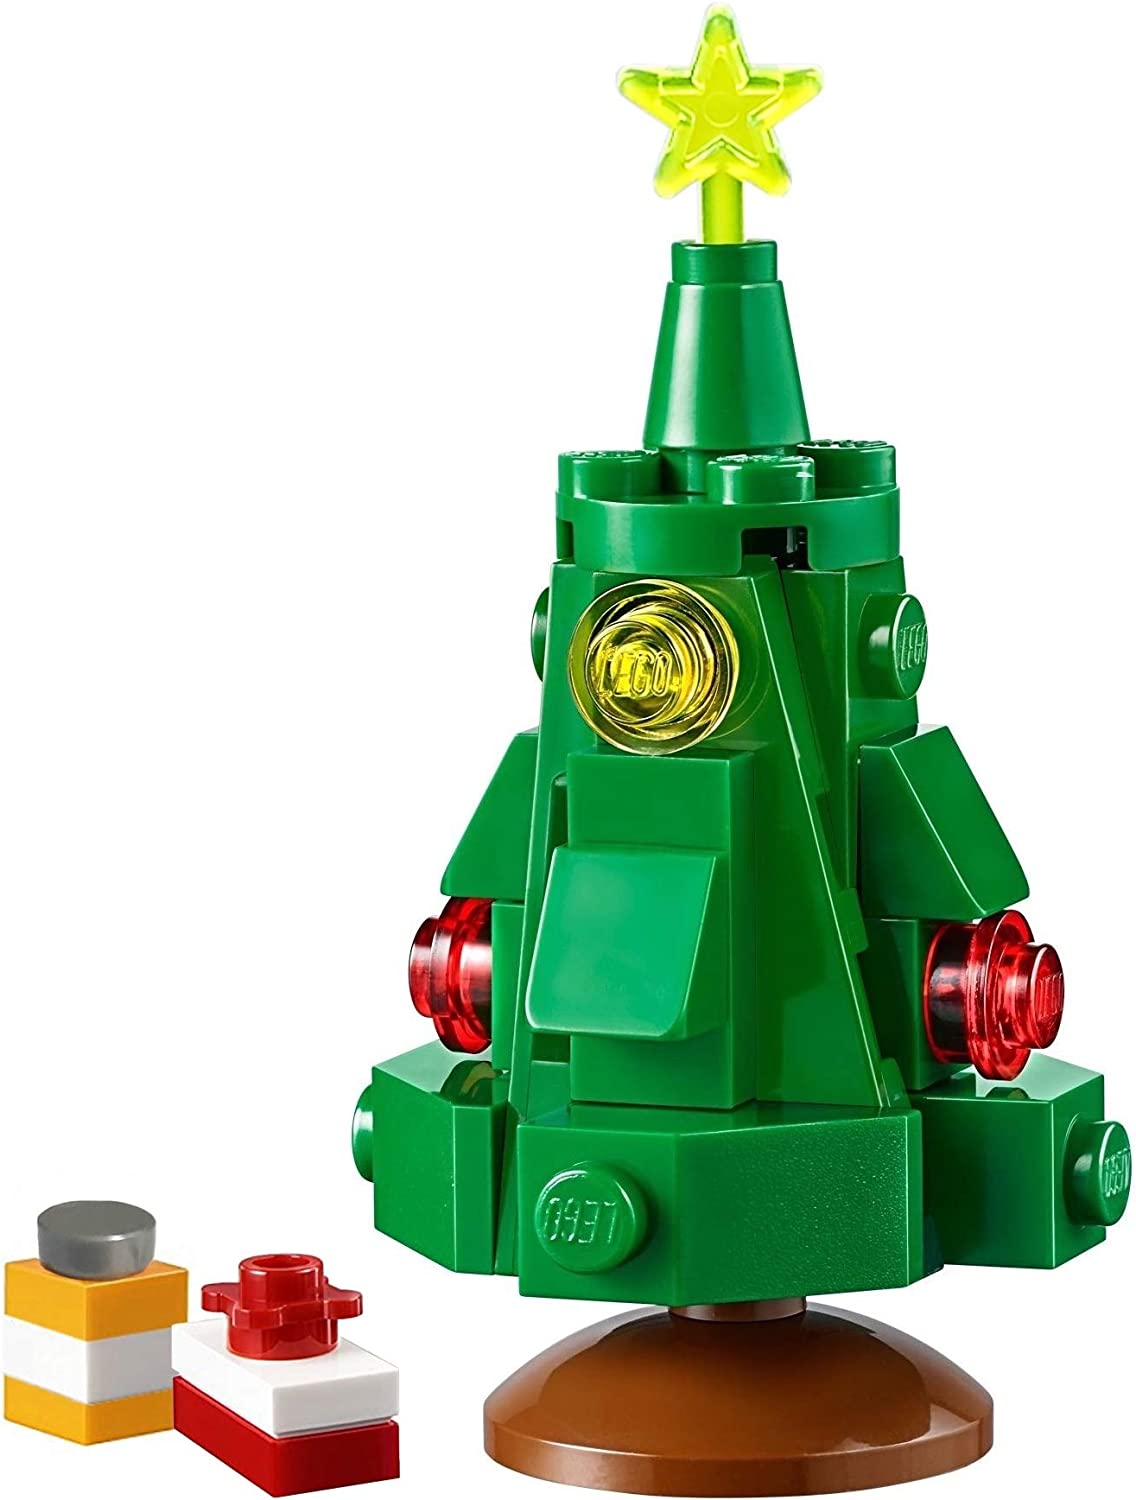 LEGO Holiday Mini Build Set - Little Christmas Xmas Tree (with Presents) 10245